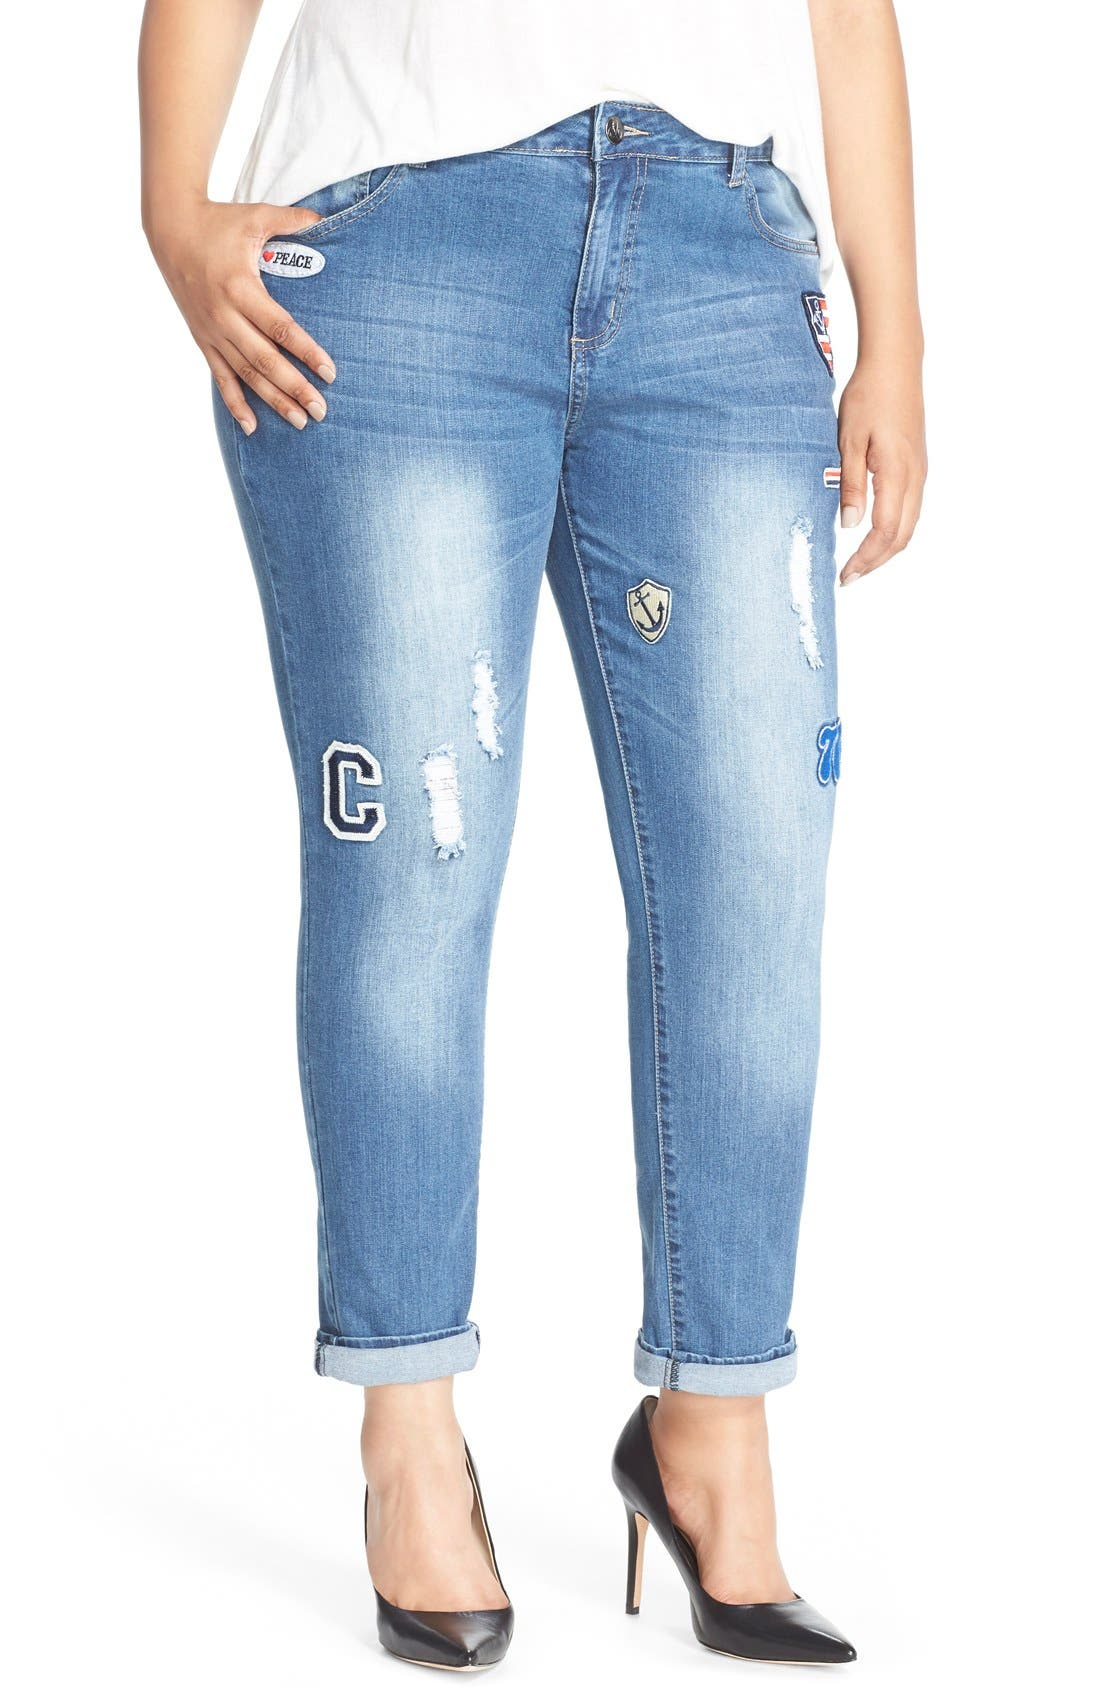 Alternate Image 1 Selected - City Chic '80s Girl' Patch Detail Distressed Roll Cuff Jeans (Dark Denim) (Plus Size)